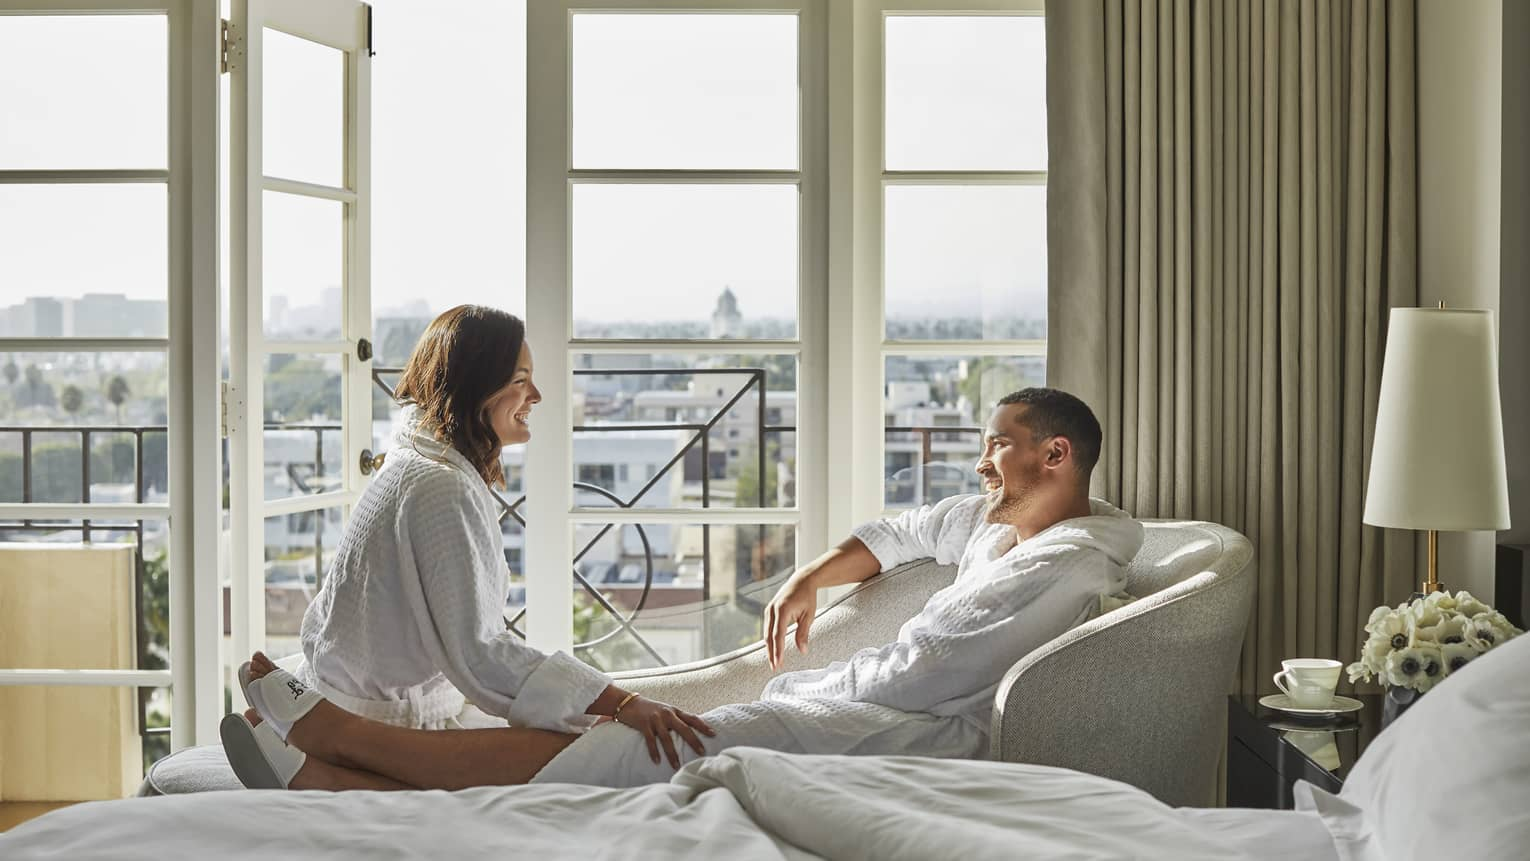 Smiling man and woman wearing bathrobes, lounging in front of sunny hotel room windows